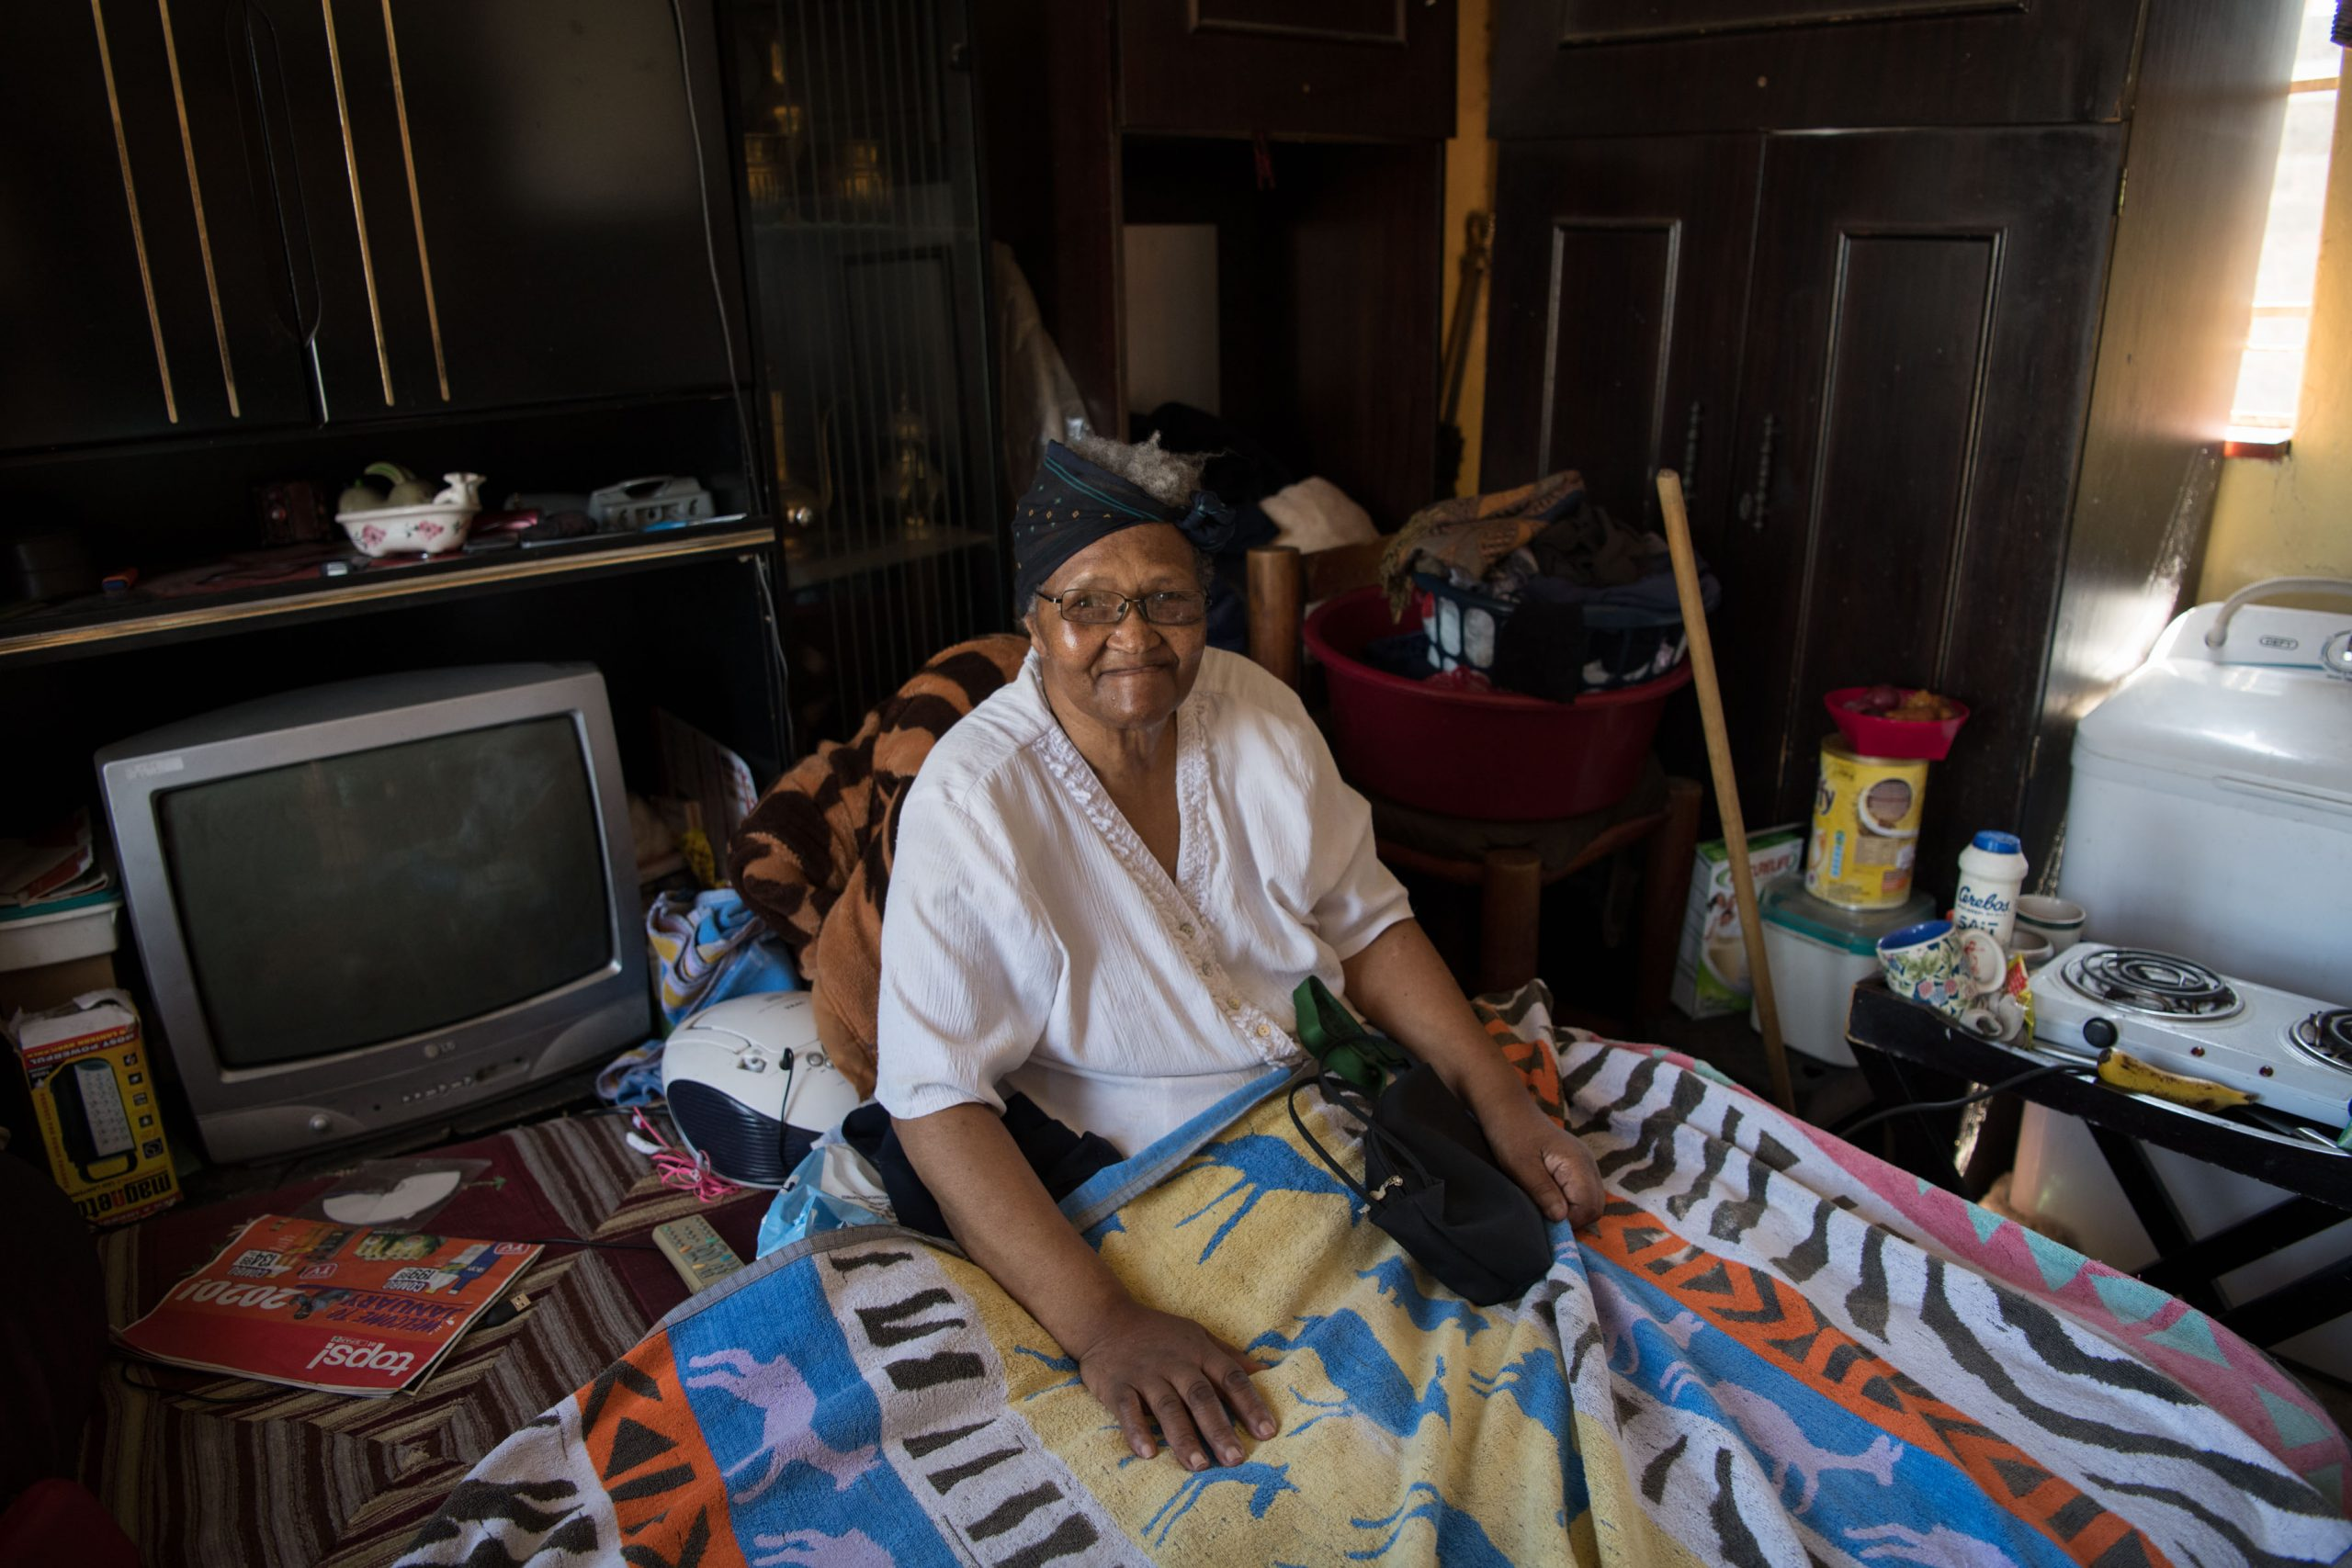 3 February 2020: Nonkululeko Takane has diabetes and both of her legs have been amputated. Her home is not big enough to accommodate her wheelchair so she has to keep it at her son's house, also at Adcock Homes.